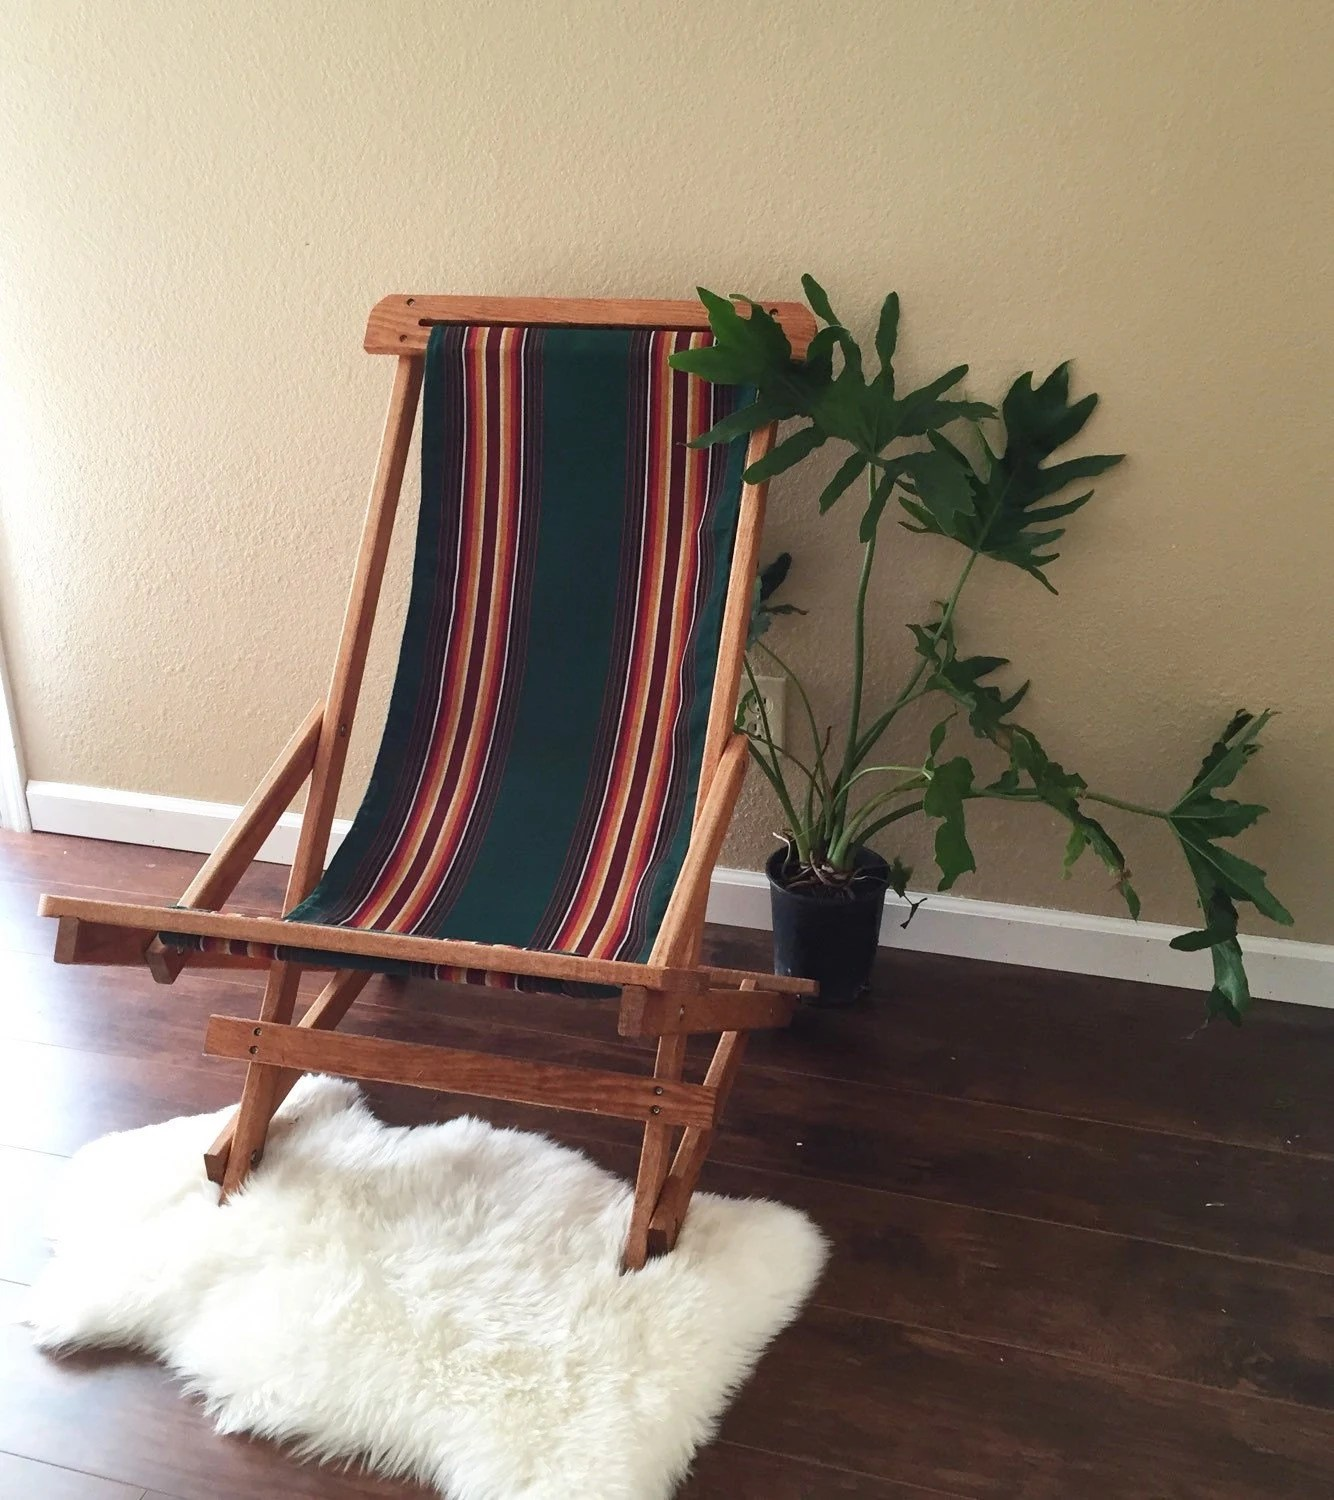 antique beach chair travel baby high seat vintage outdoor folding wooden green striped canvas lawn